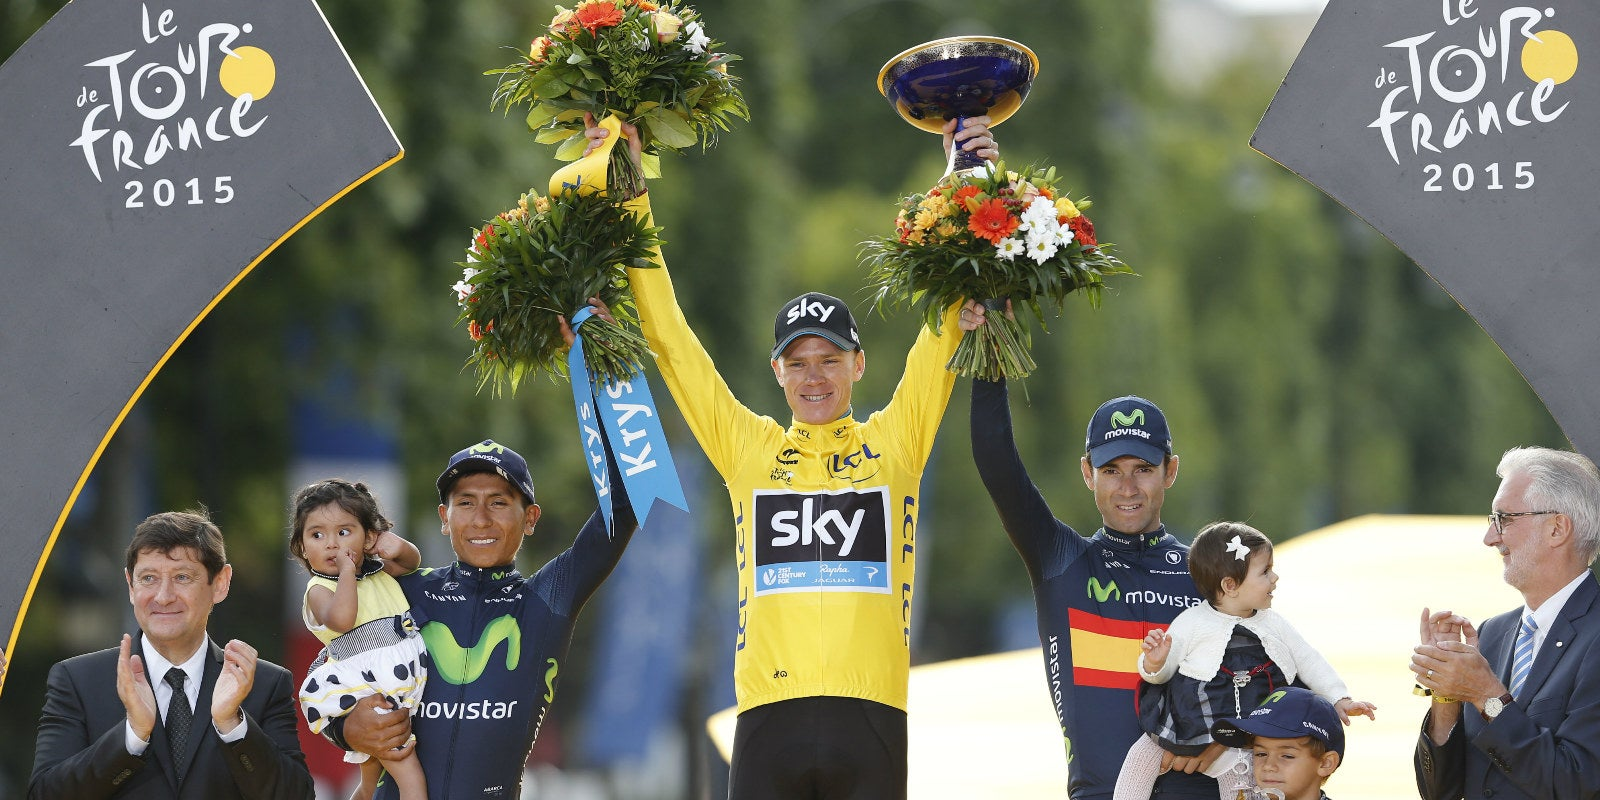 Chris Froome Wins The 2015 Tour De France Peloton Magazine